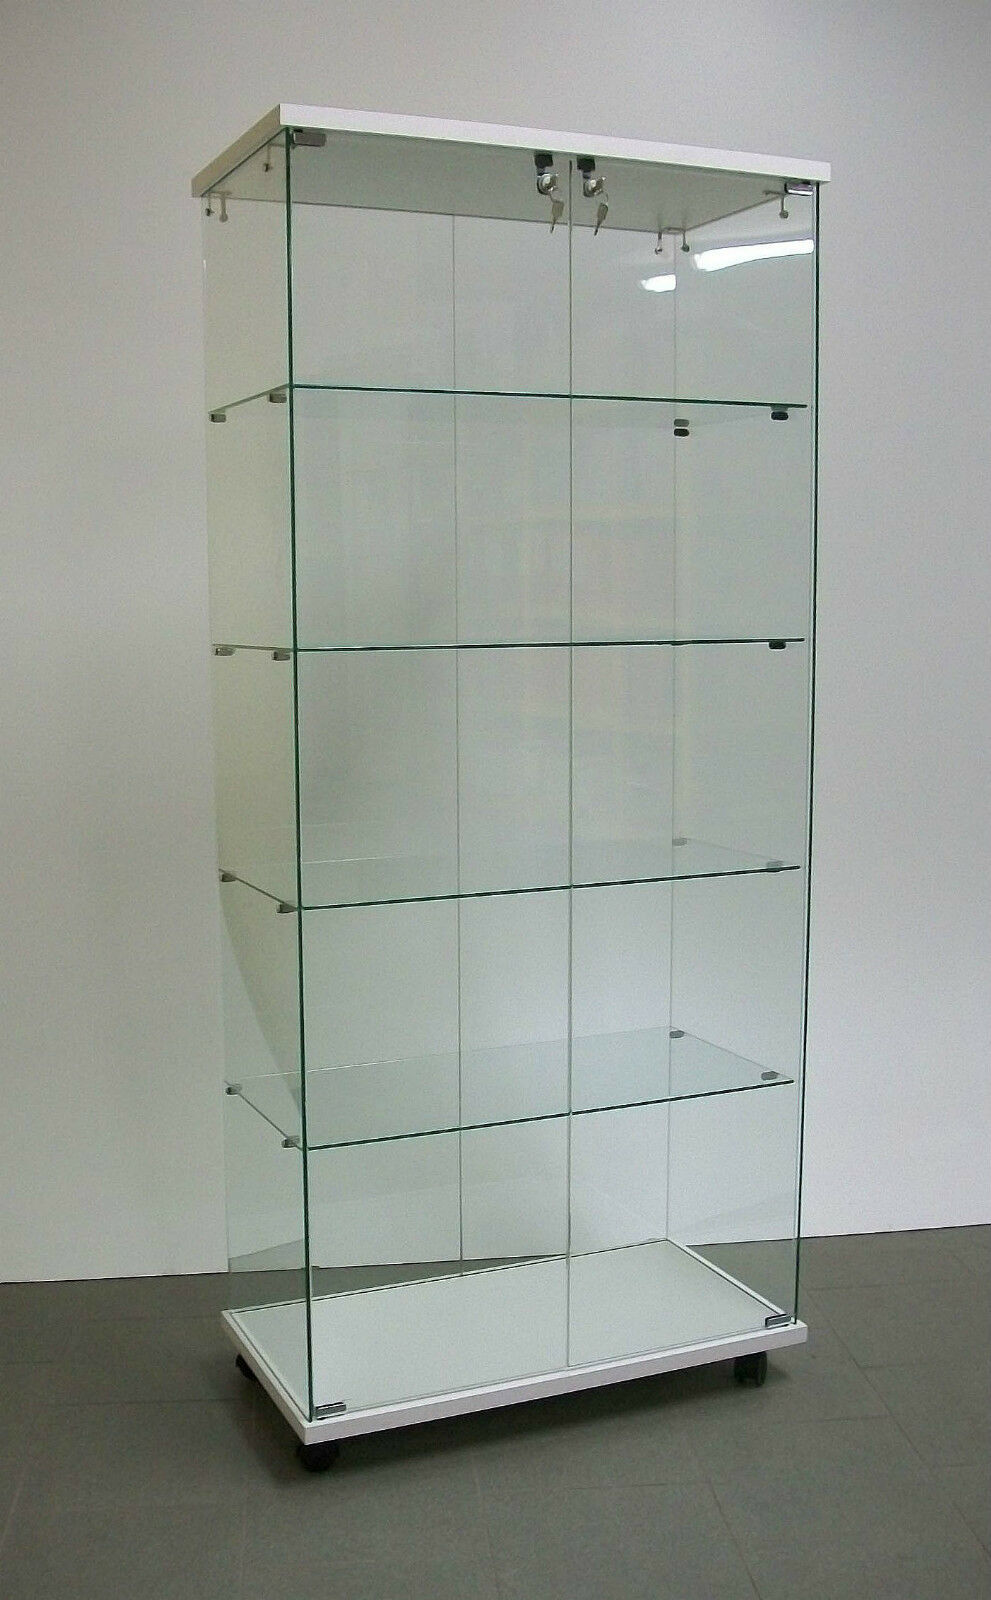 sammlervitrine vitrine glasvitrine mineralien eur 321 30 picclick de. Black Bedroom Furniture Sets. Home Design Ideas